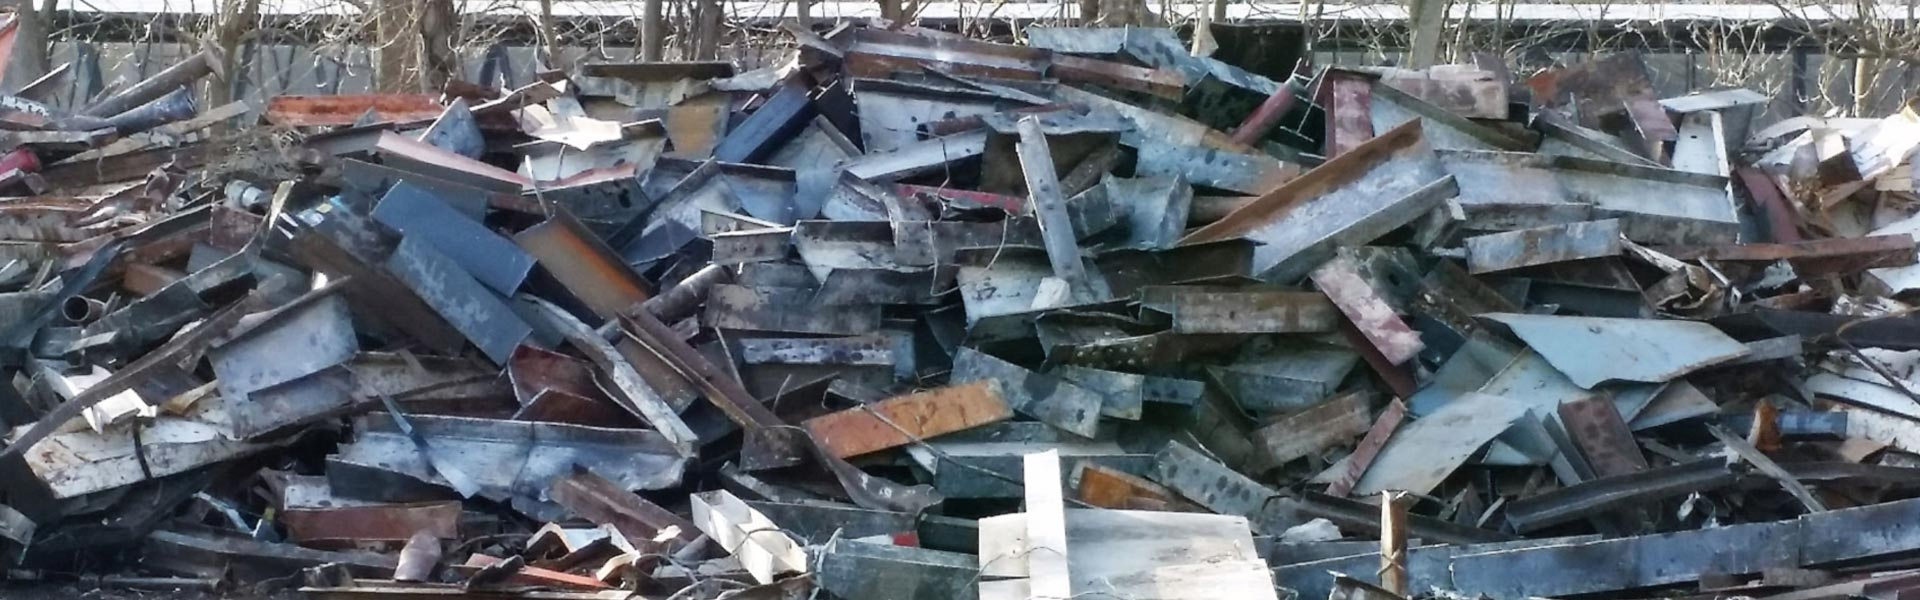 Modern Recycling Services Norristown Dumpster Rental Pa Norristown Scrap Metal Pennsylvania Norristown Pa Norristown Pennsylvania 19401 19404 19409 19415